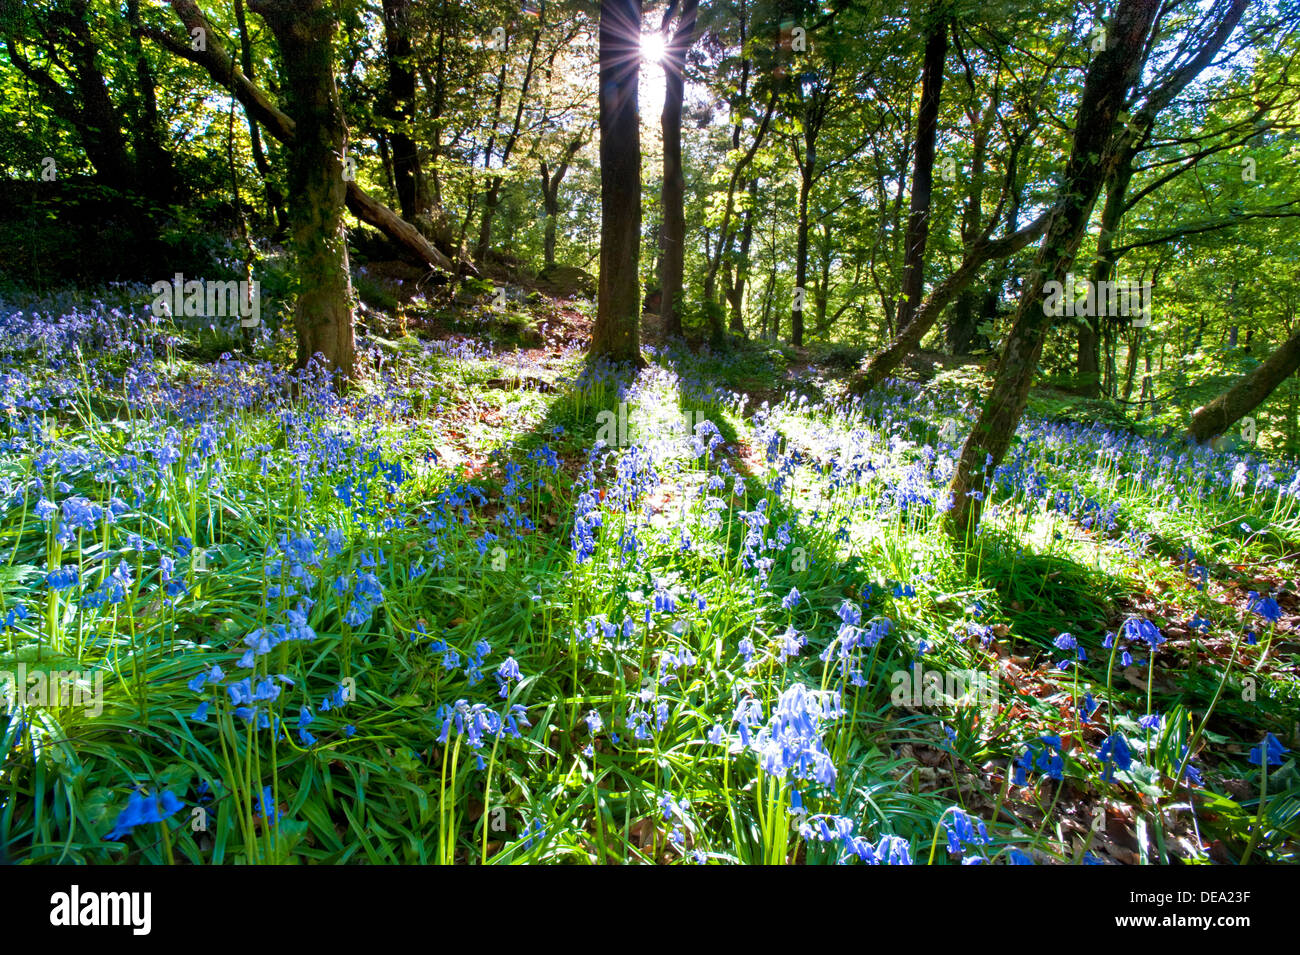 Sunlight and Shadows in a Bluebell Woodland, England, UK - Stock Image